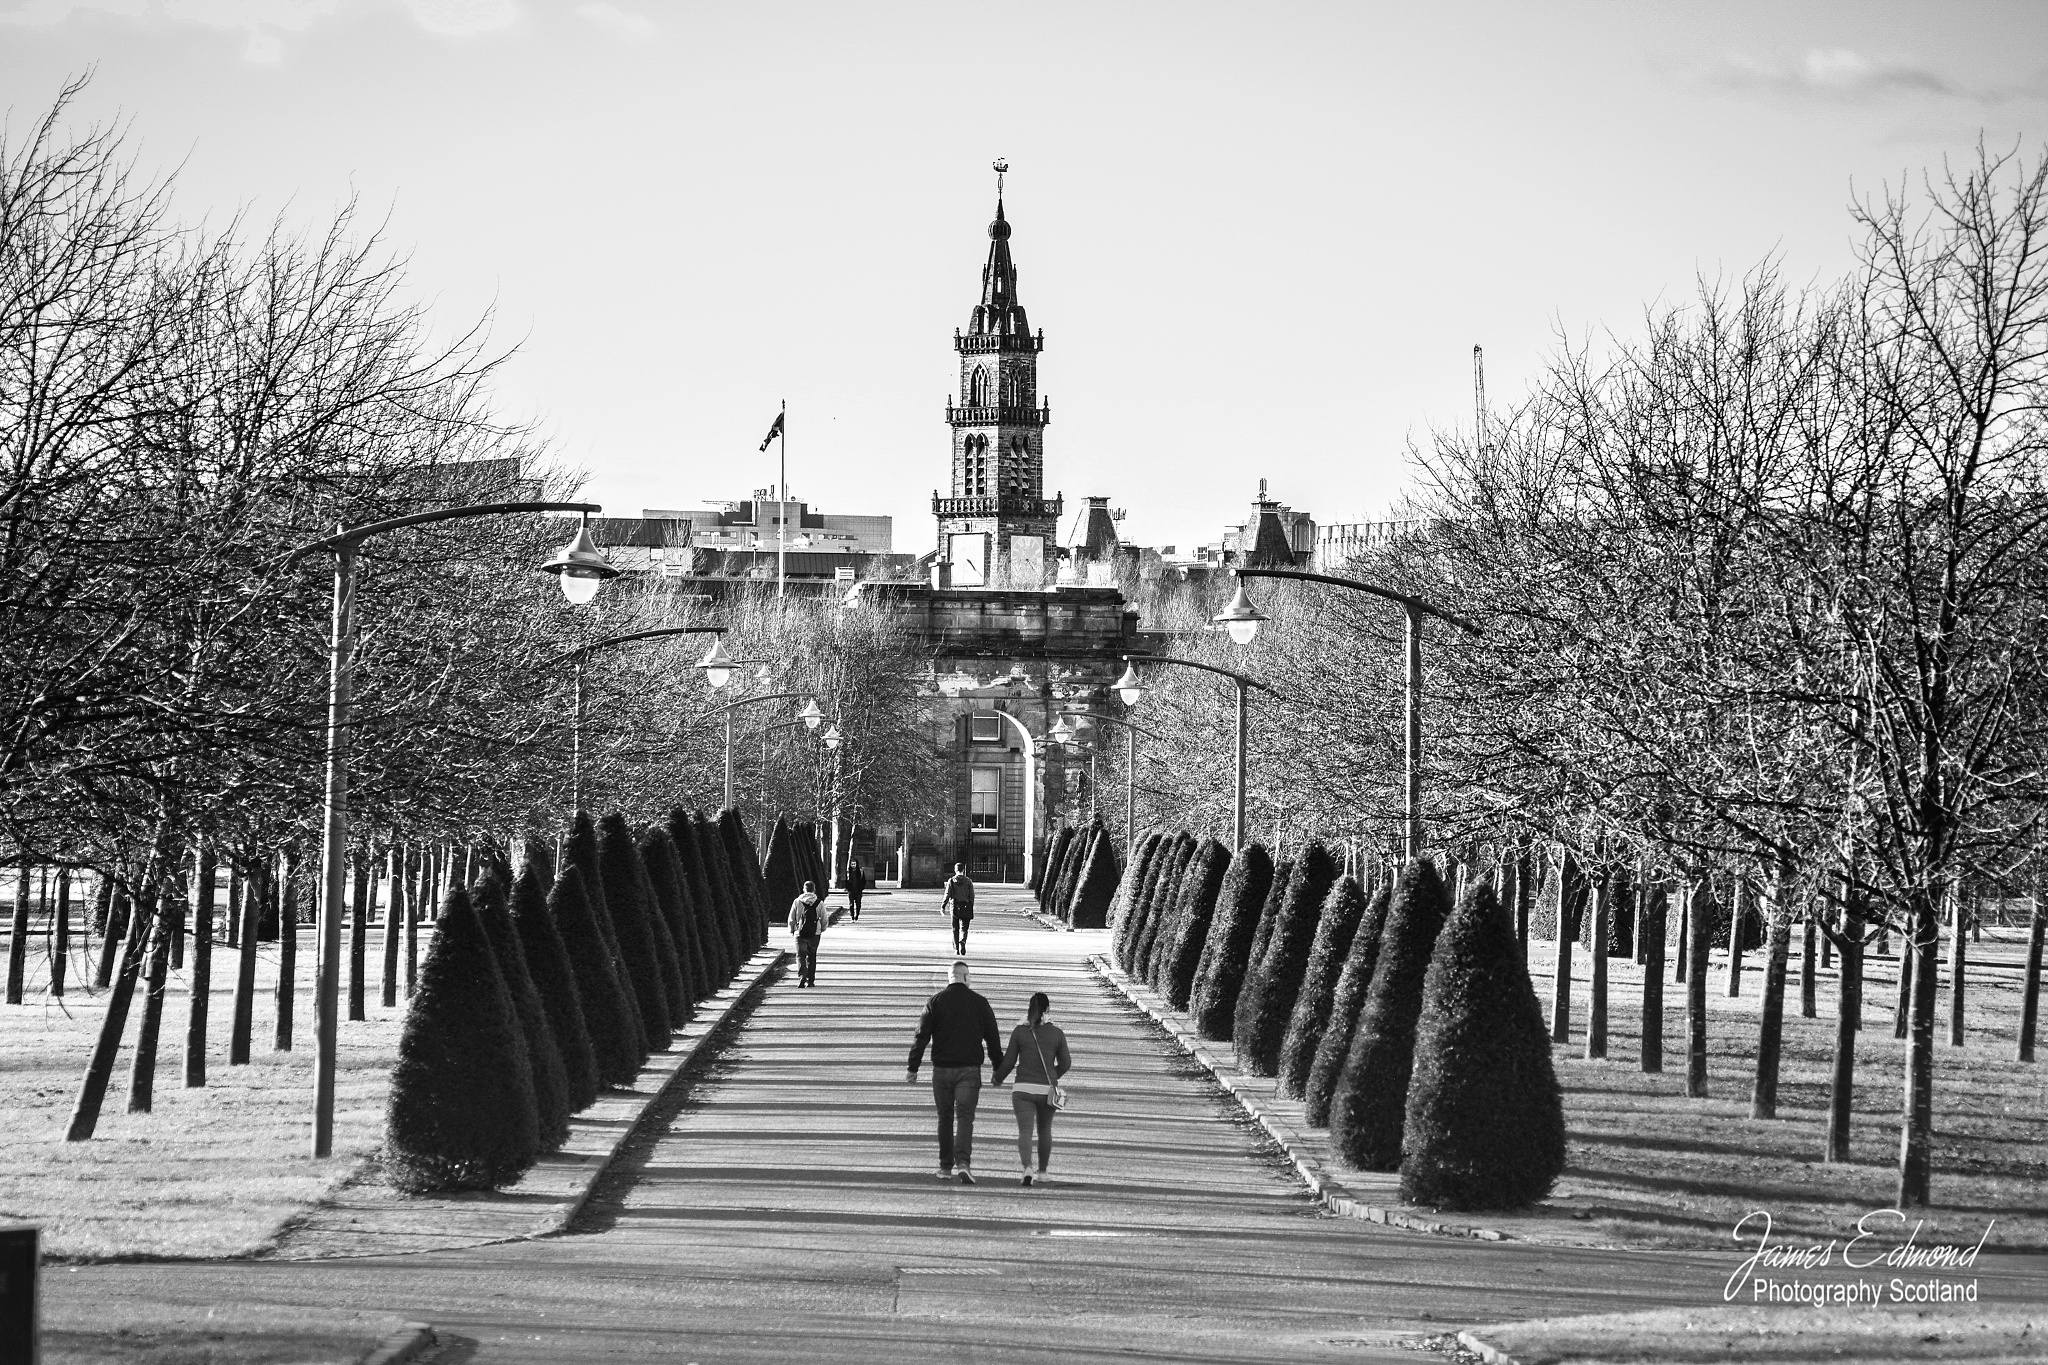 Glasgow Green approaching the Sheriff Court by James Edmond Photography